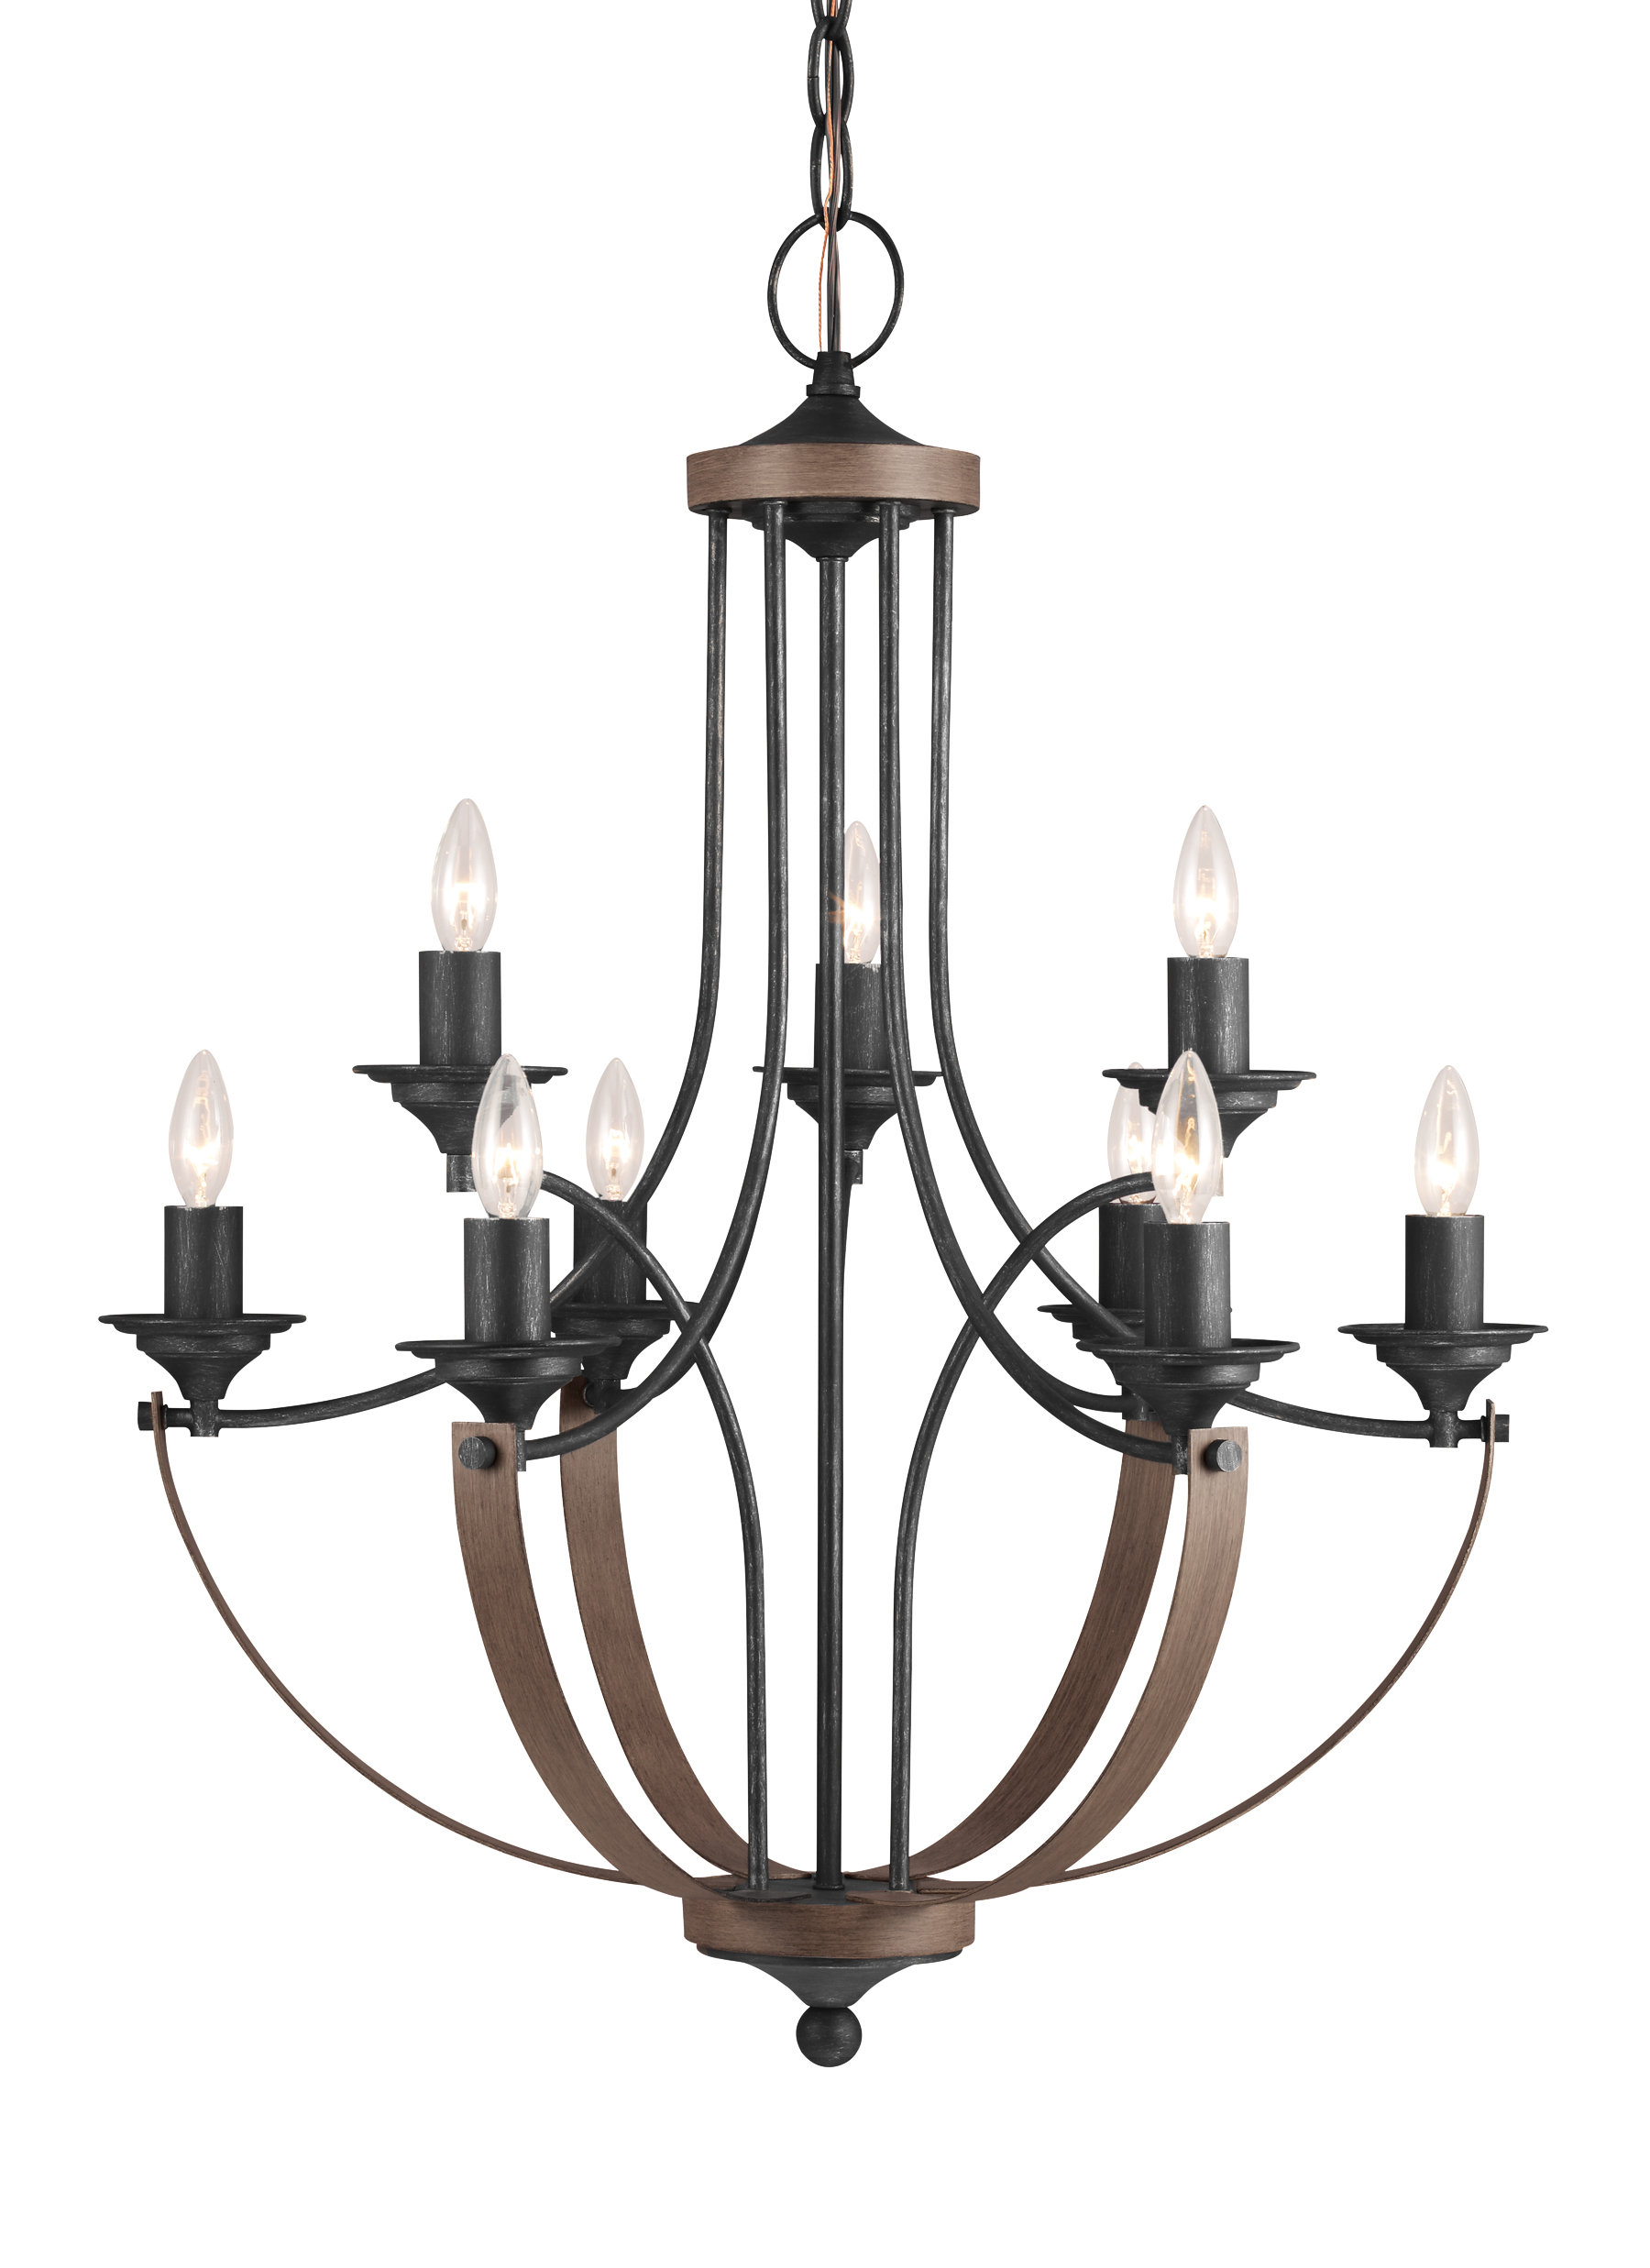 Camilla 9-Light Candle Style Chandelier throughout Camilla 9-Light Candle Style Chandeliers (Image 6 of 30)